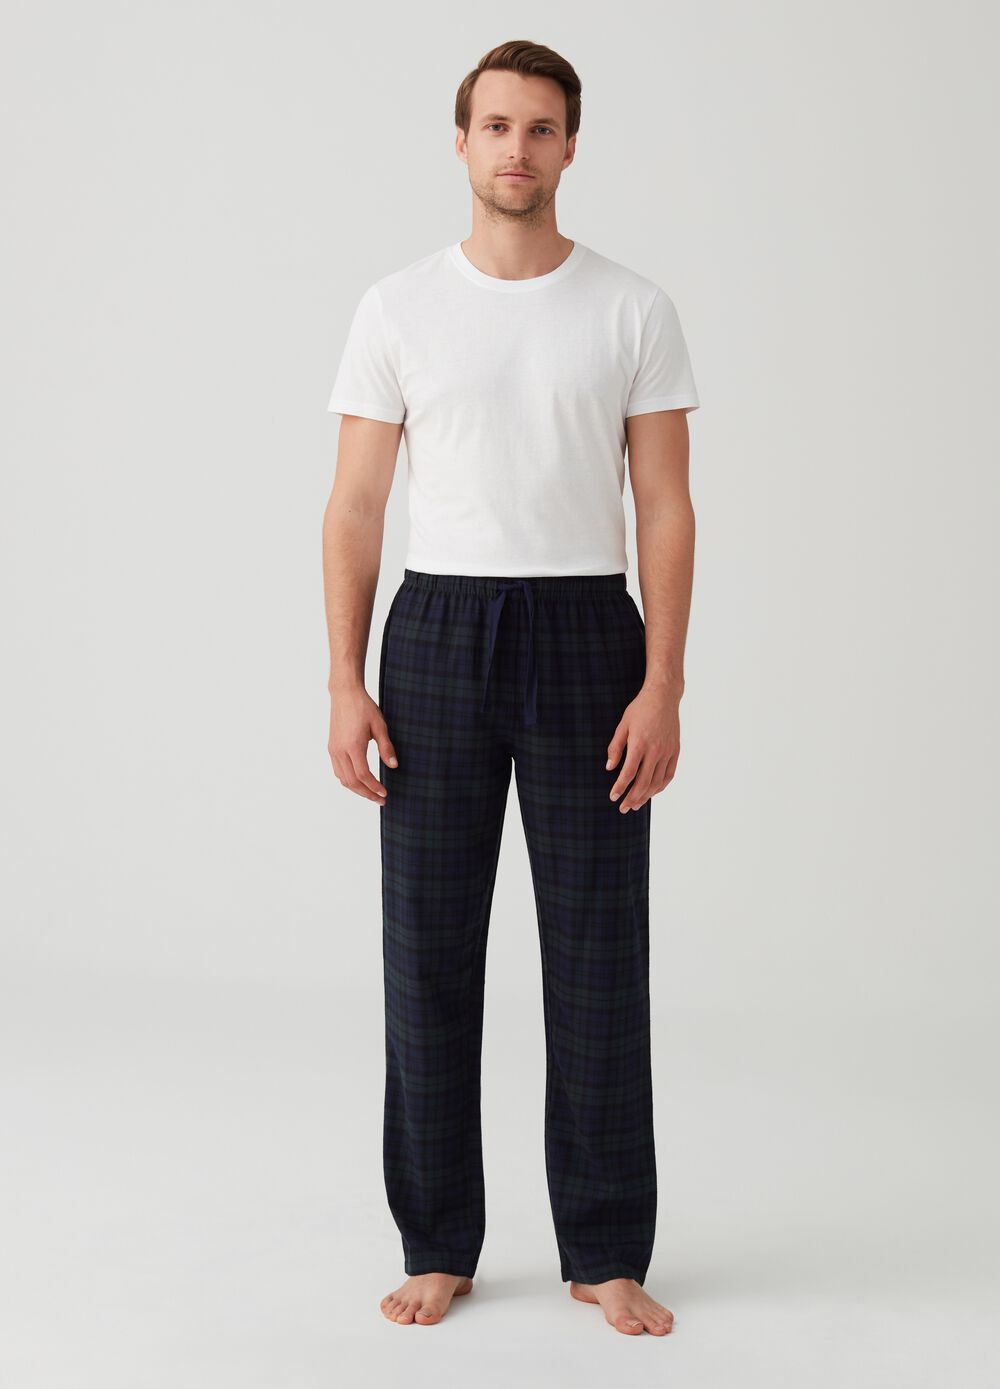 Flannel trousers with check pattern